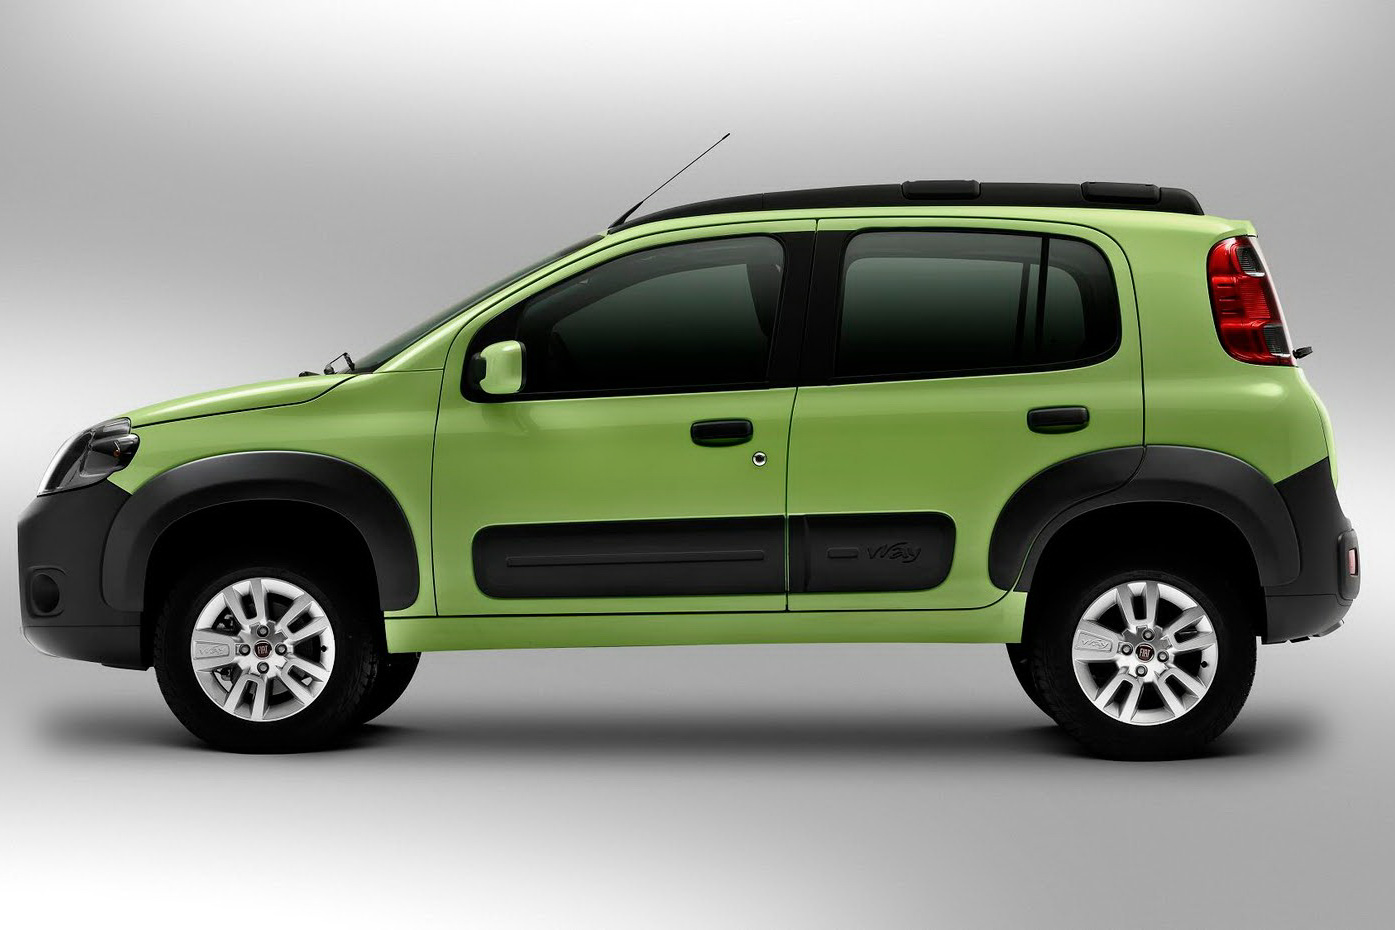 Official Photos And Details On The New Fiat Uno